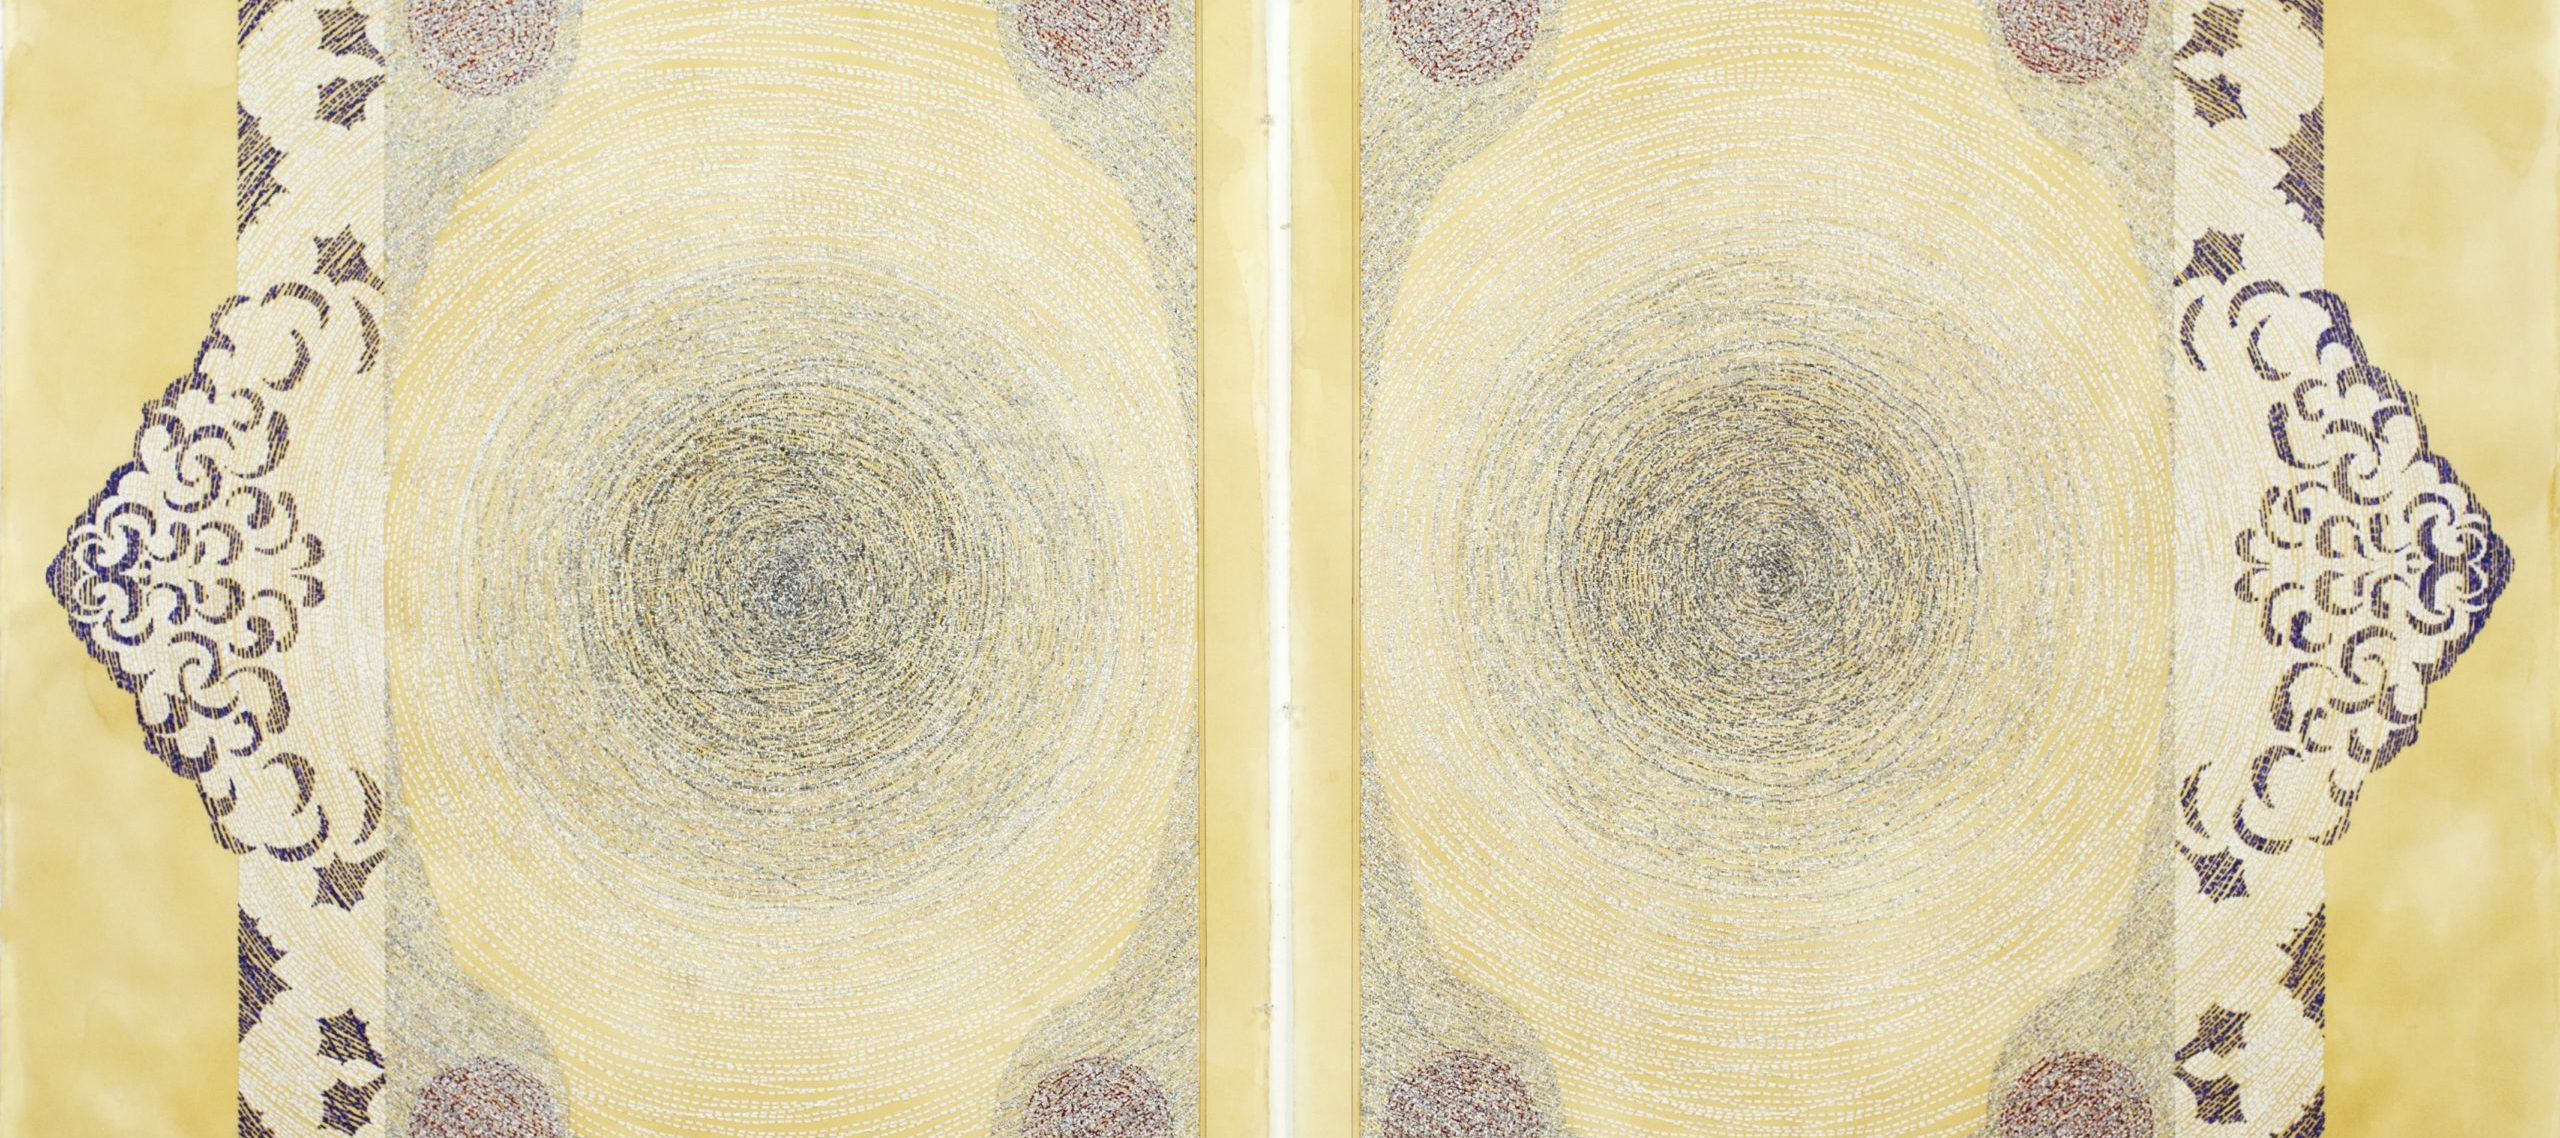 Diptych drawing of two panels with spiraling scraps of text that mirror each other against a yellow mottled backdrop. Concentric circles and arabesque shapes adorn diptych.